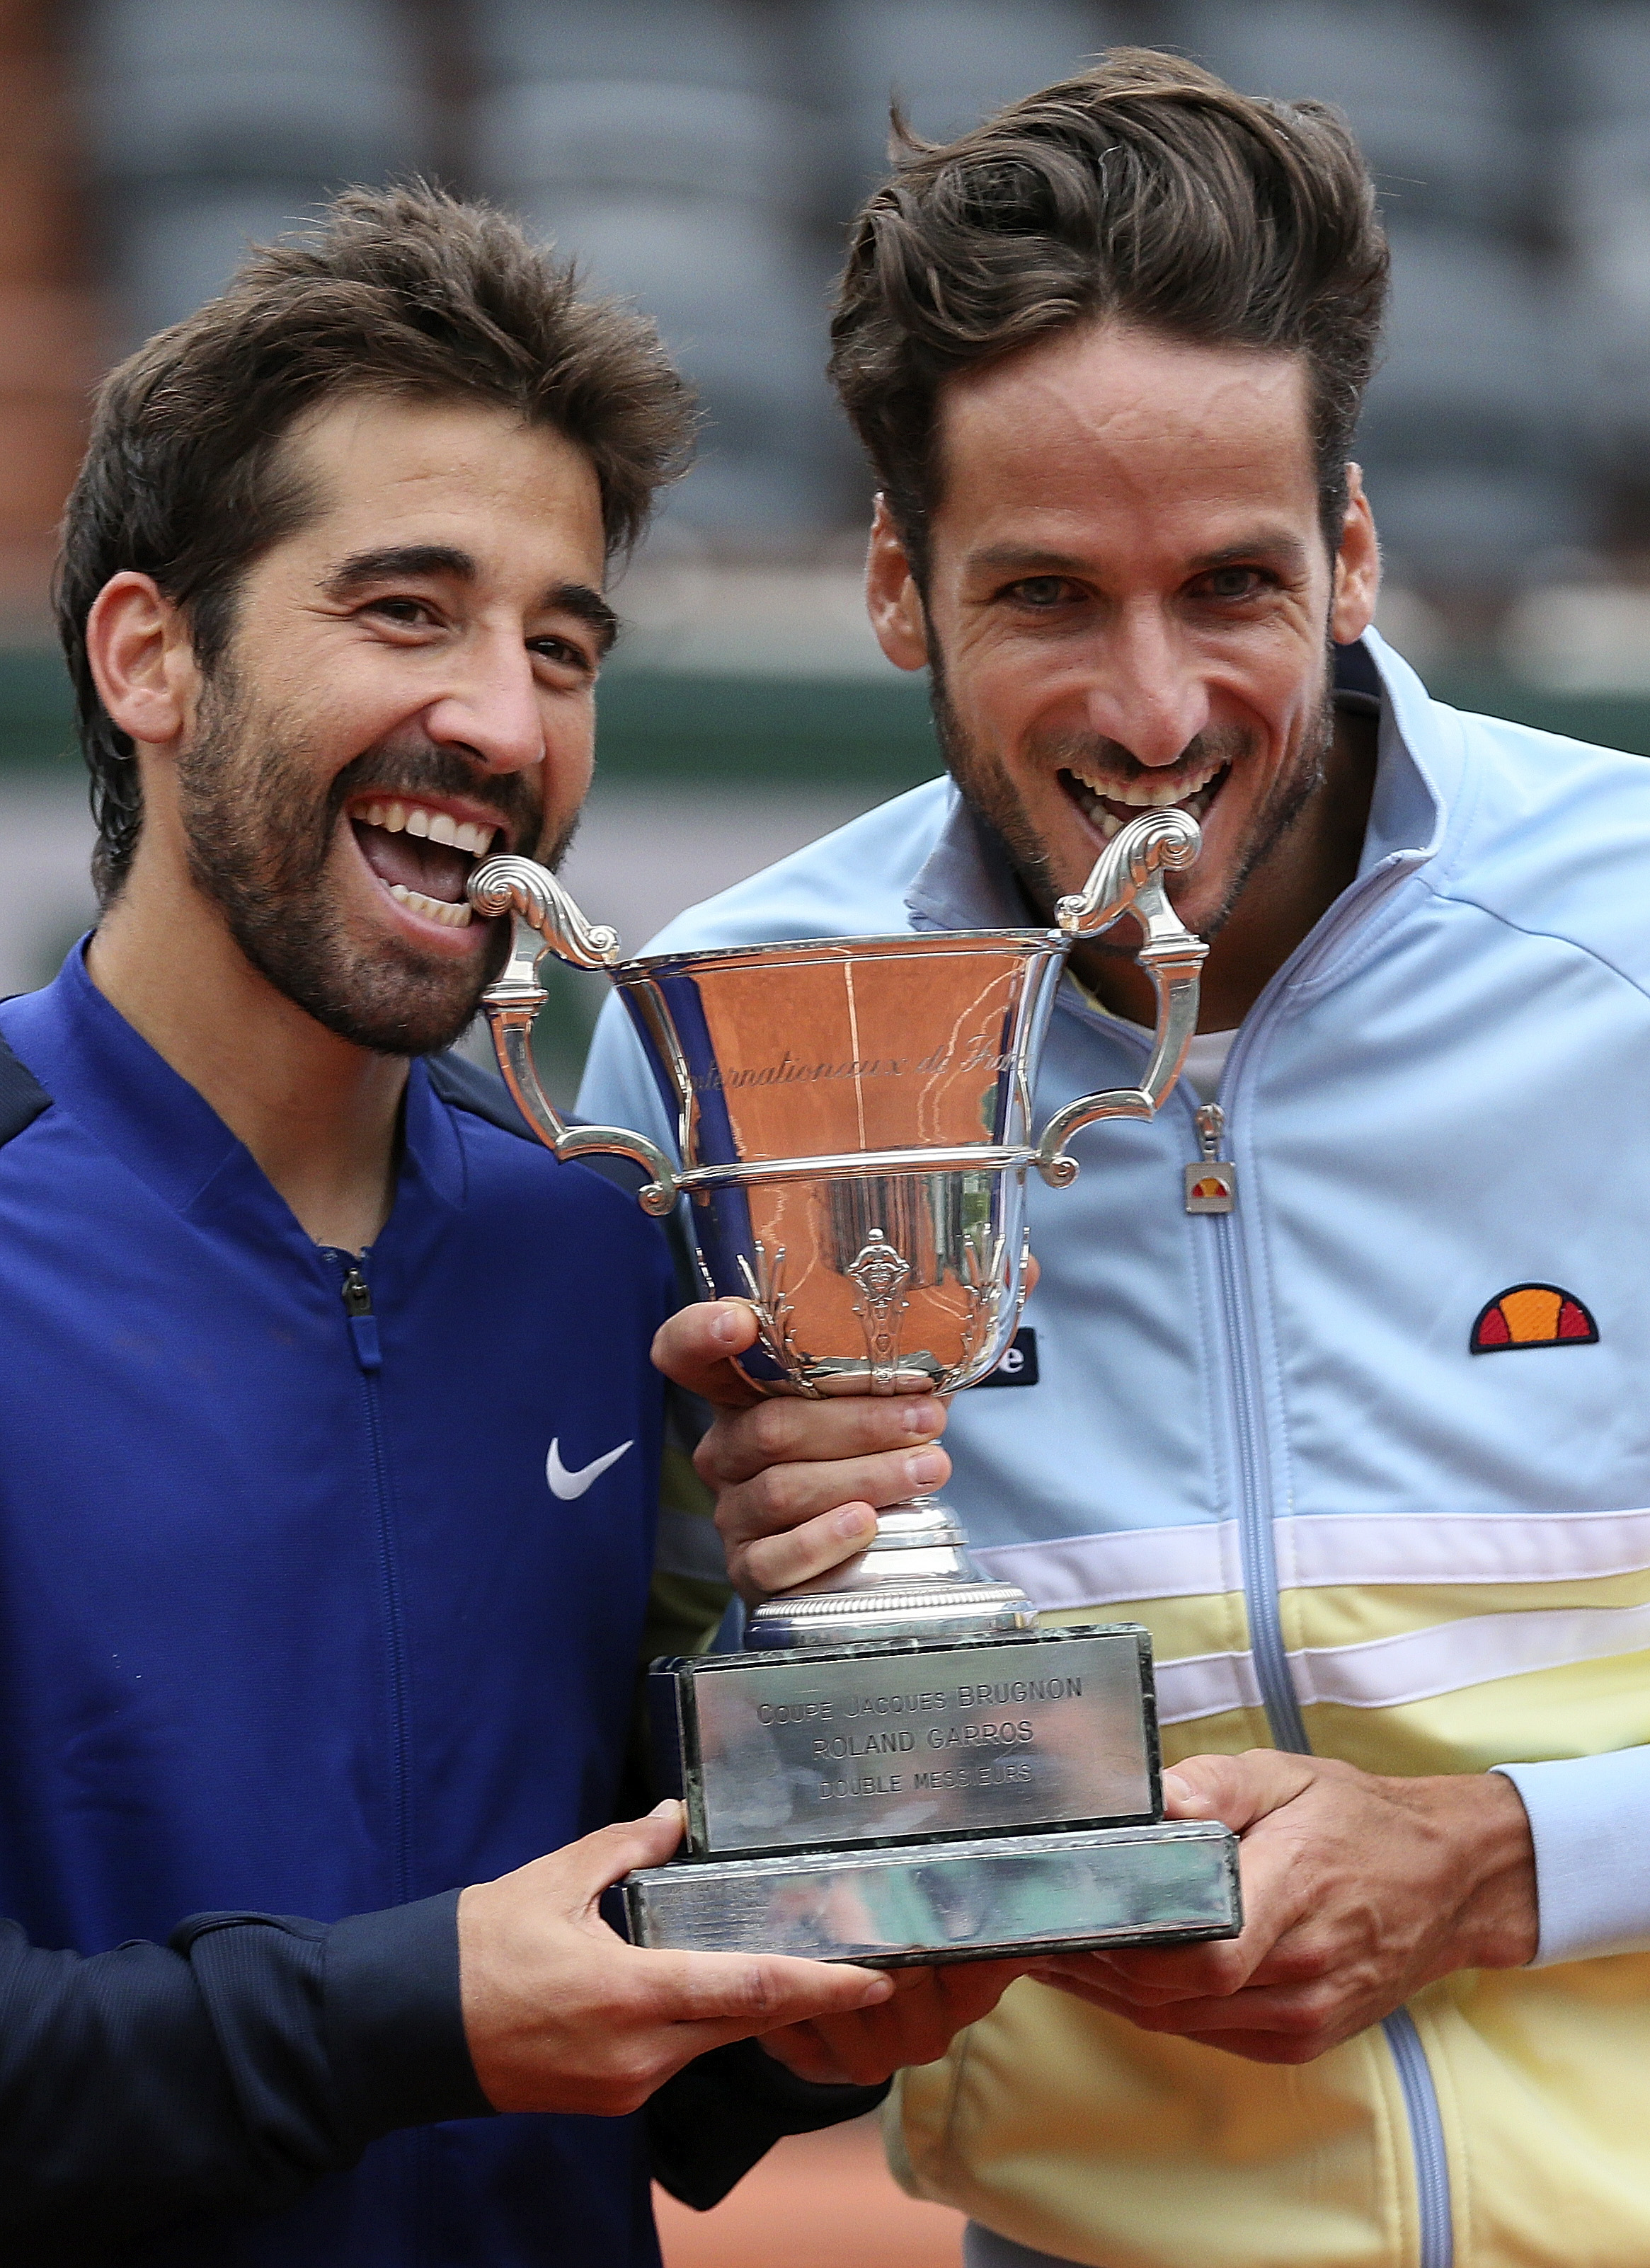 Spanish pair Feliciano Lopez, right, and Marc Lopez bite their trophy after winning the men's doubles final match of the French Open tennis tournament against Bob and Mike Bryan, of the U.S,  at the Roland Garros stadium, Saturday, June 4, 2016 in Paris.